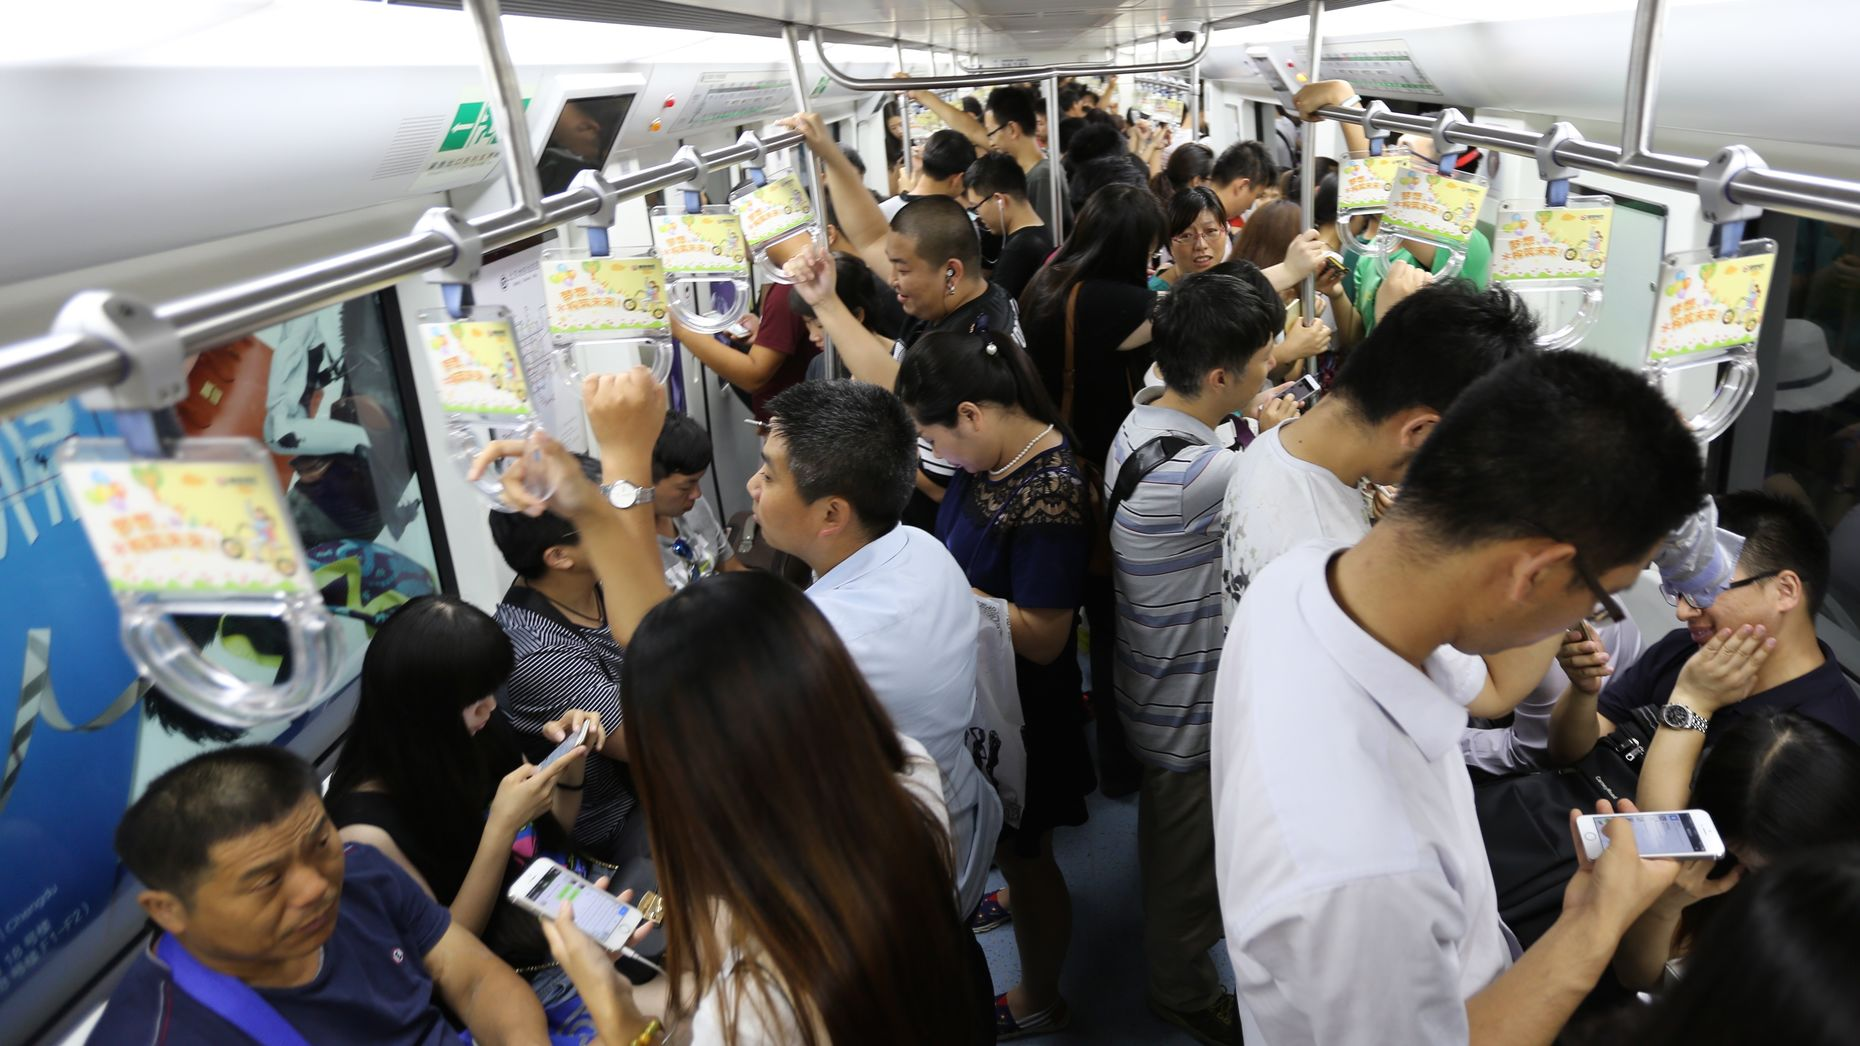 Chinese commuters using WeChat on the Beijing subway. Photo by Hao Xia.